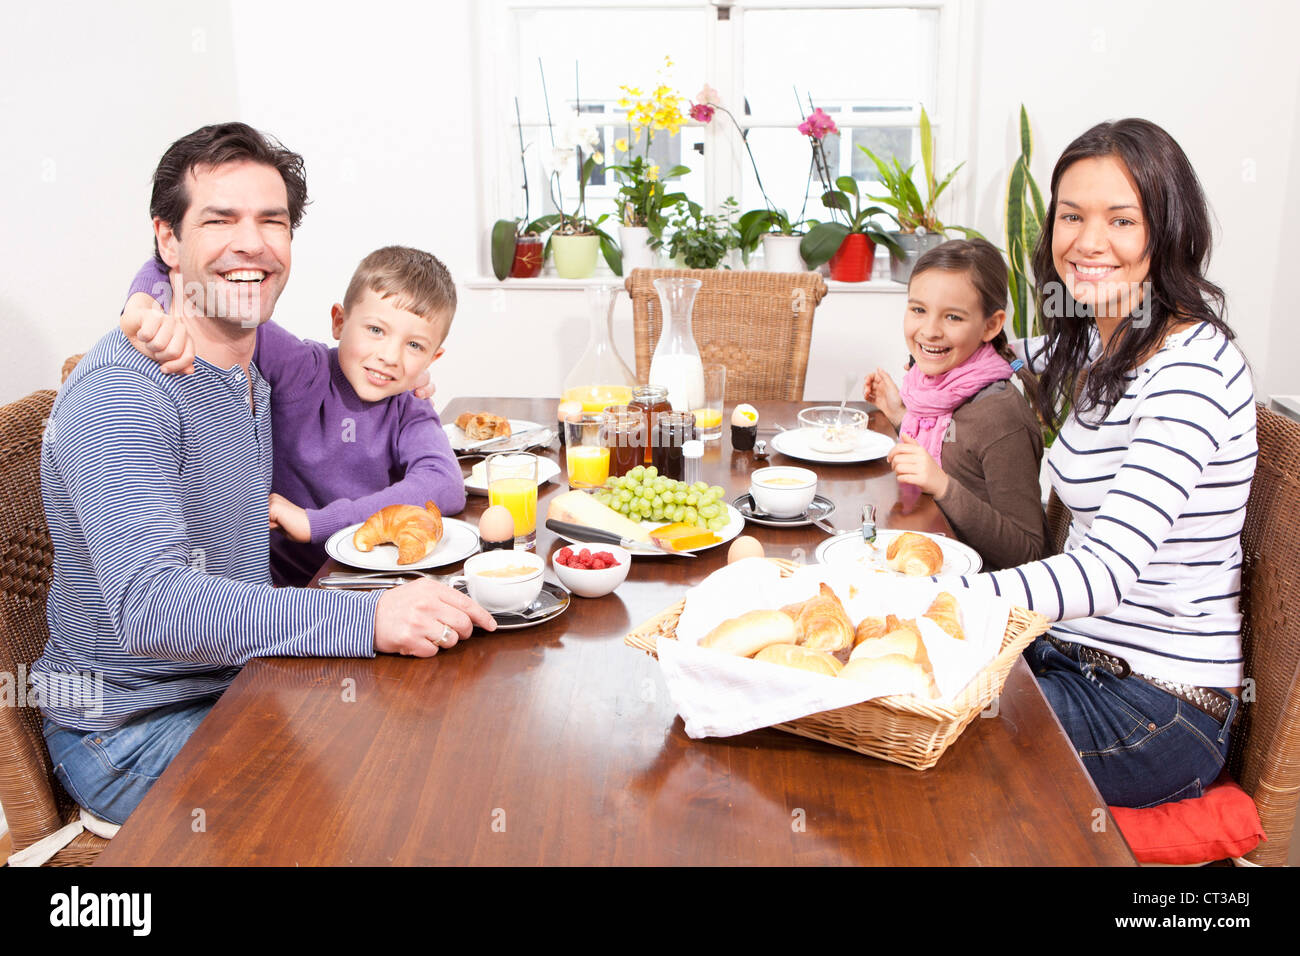 Family eating breakfast at table Photo Stock